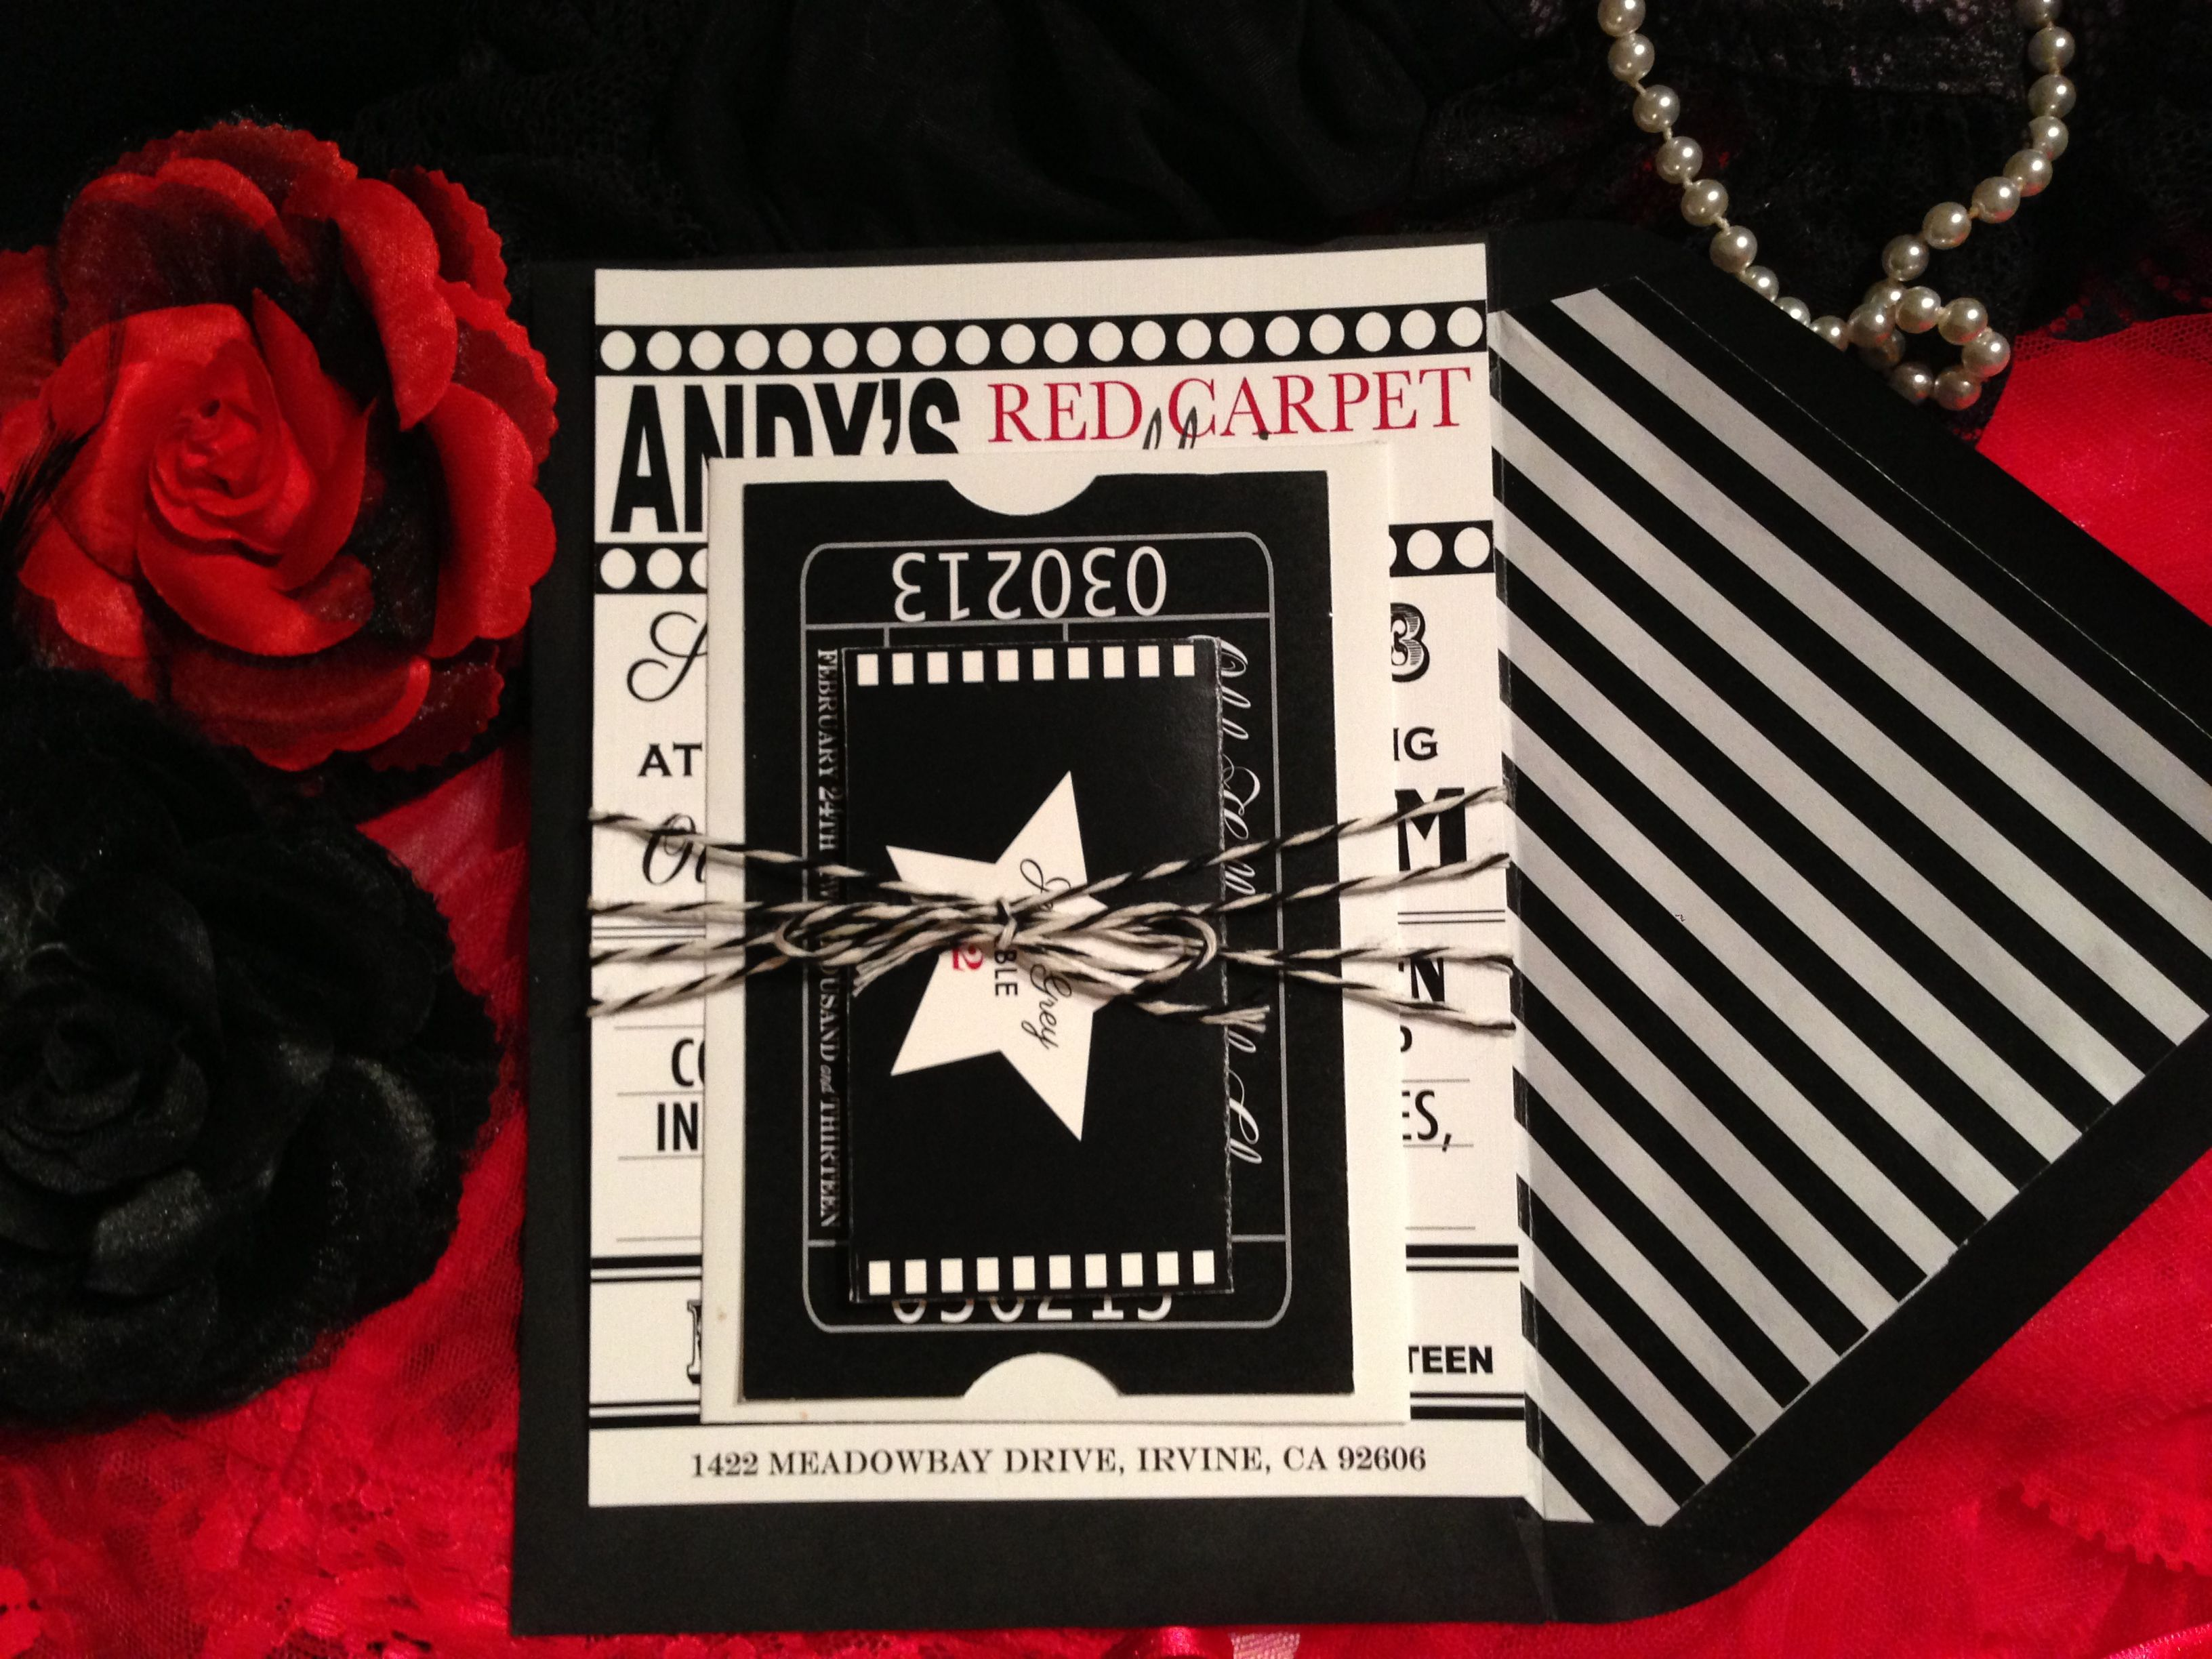 hollywood theme party invitations pictures to pin on, party invitations